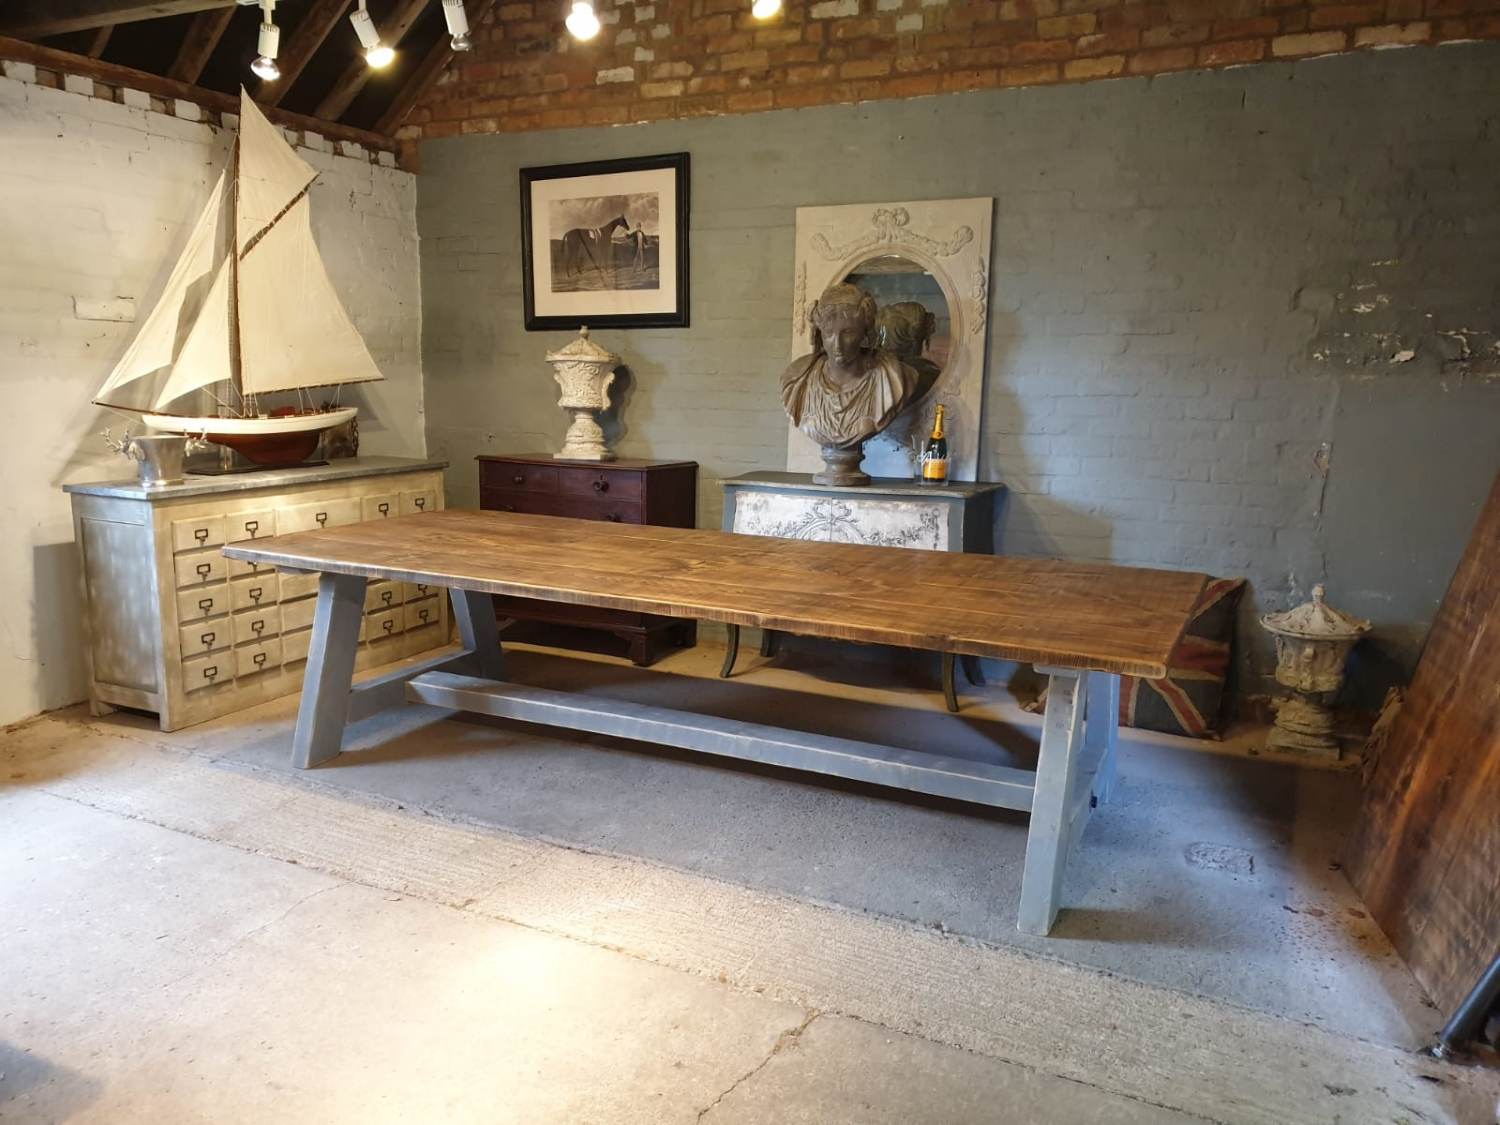 A-Frame Rustic Dining Table